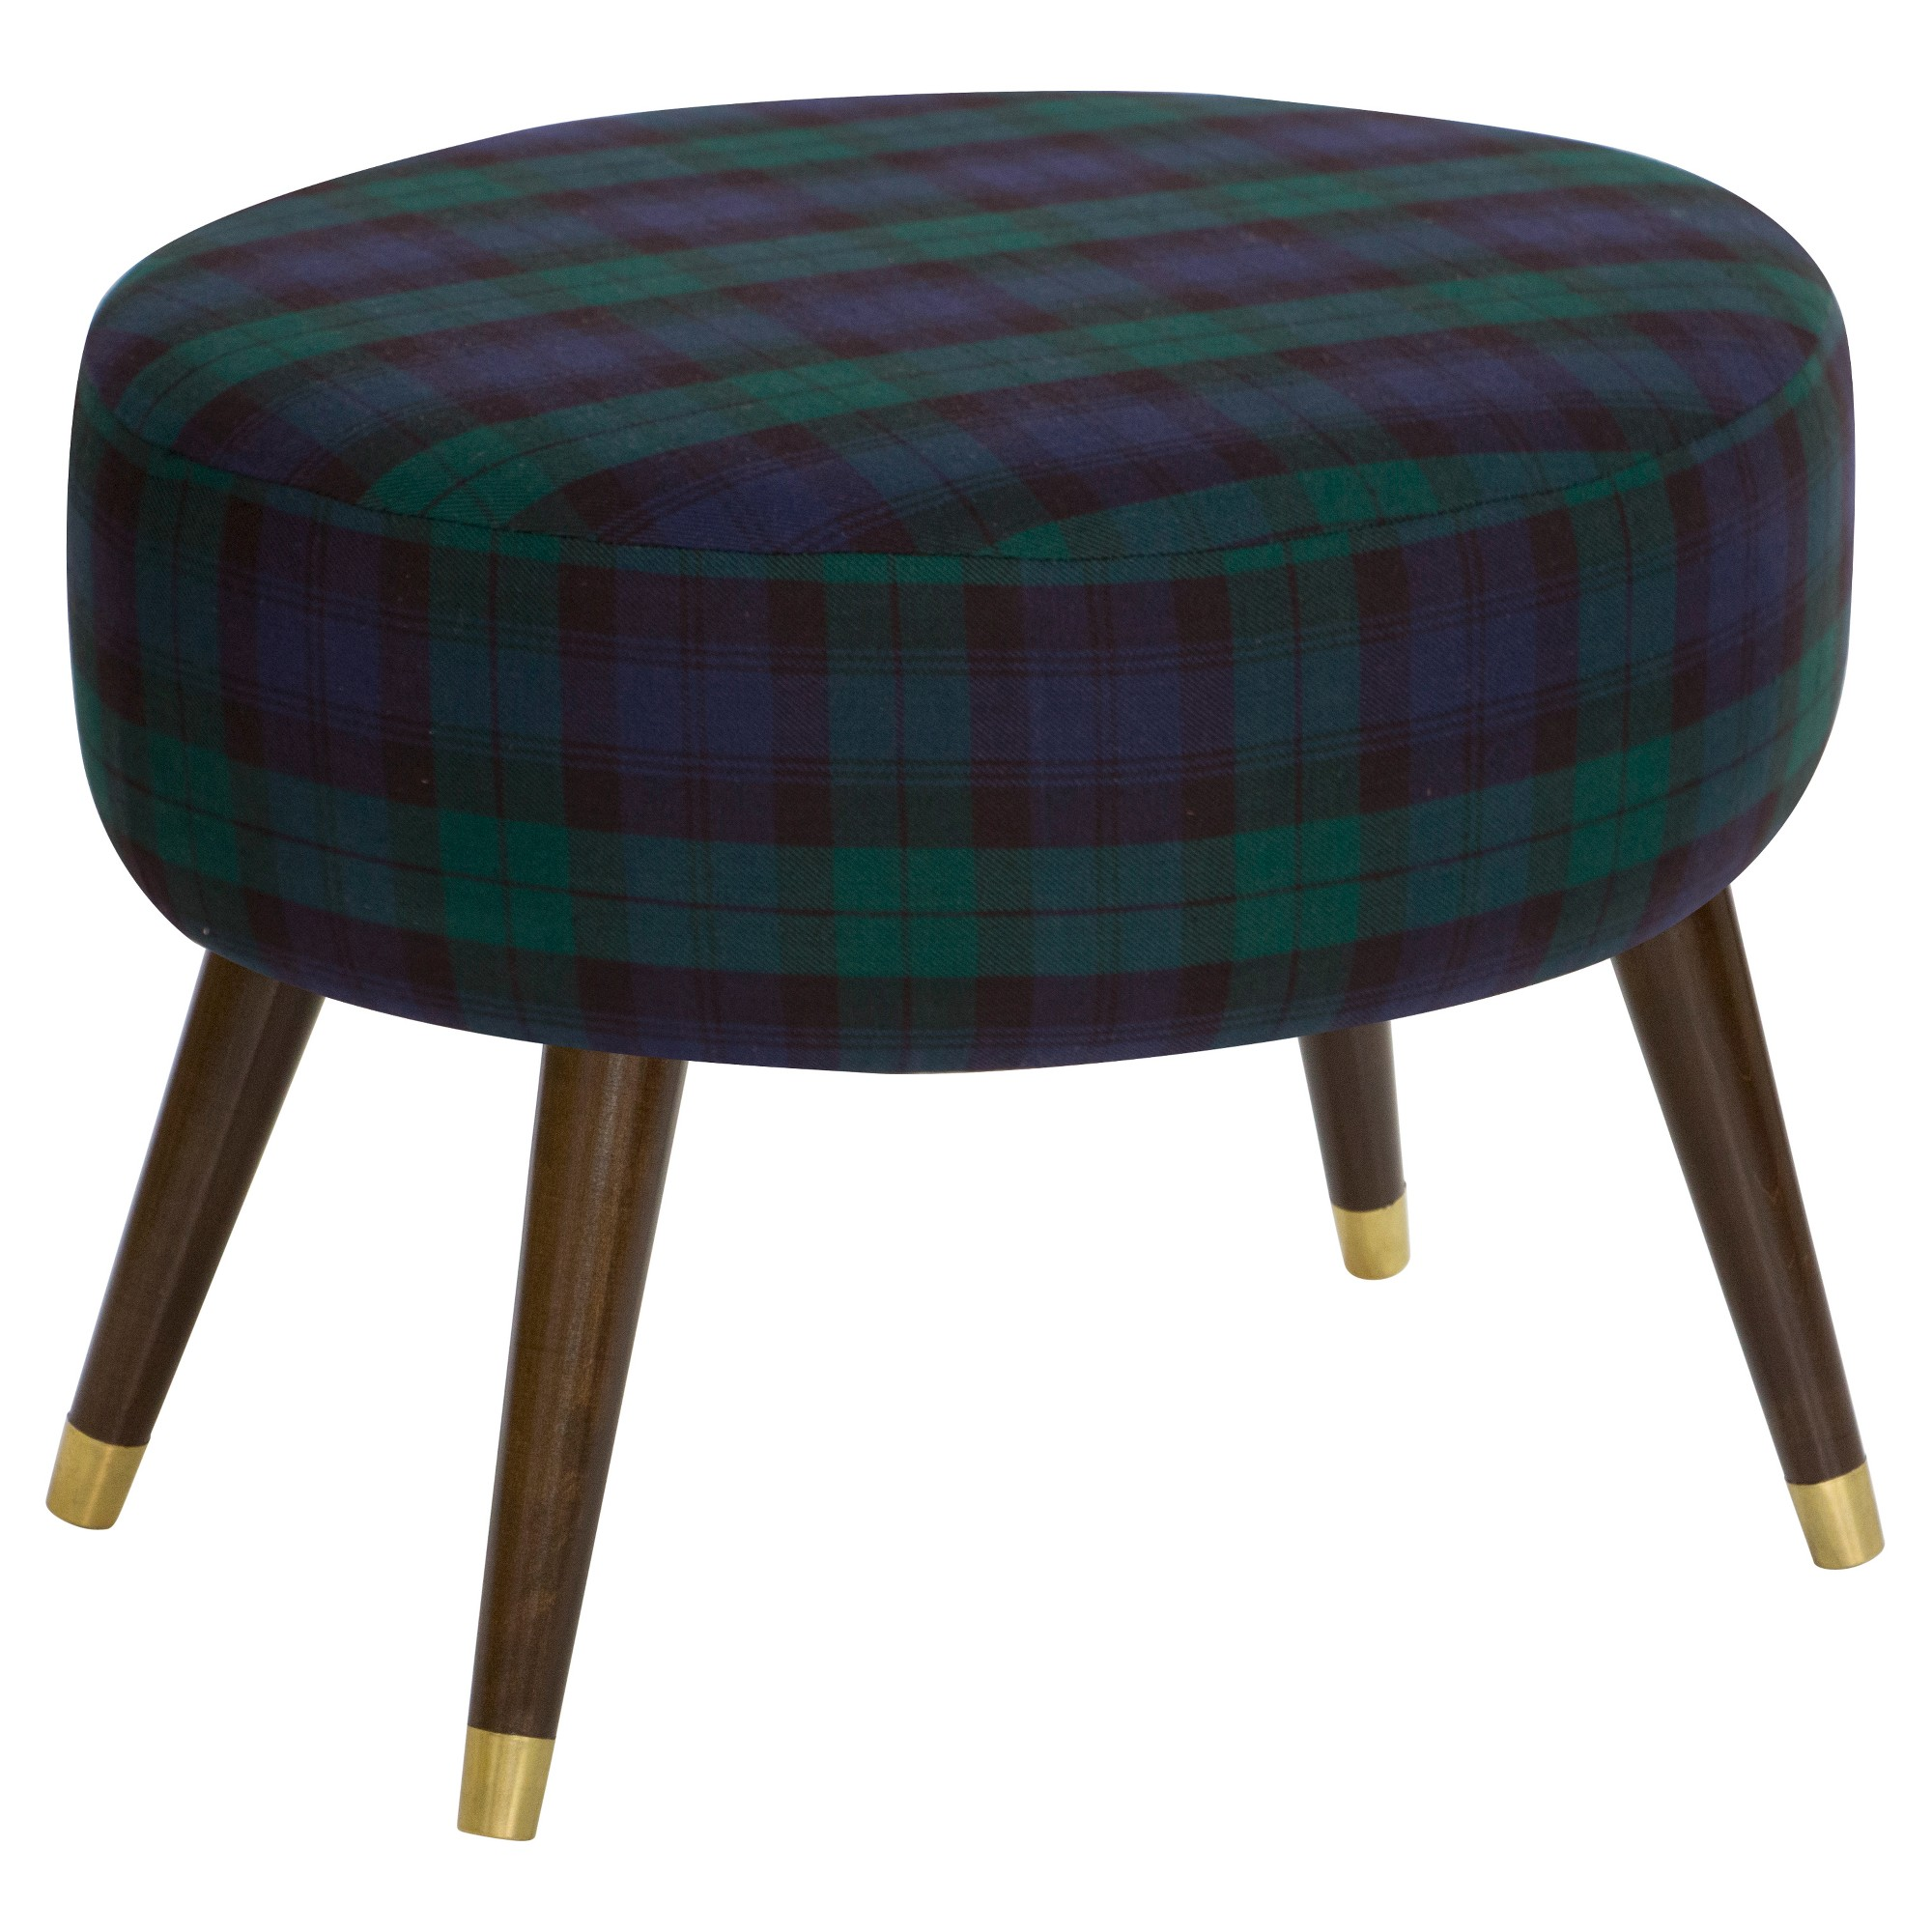 Pleasant Skyline Oval Ottoman Skyline Furniture Green Products Beatyapartments Chair Design Images Beatyapartmentscom